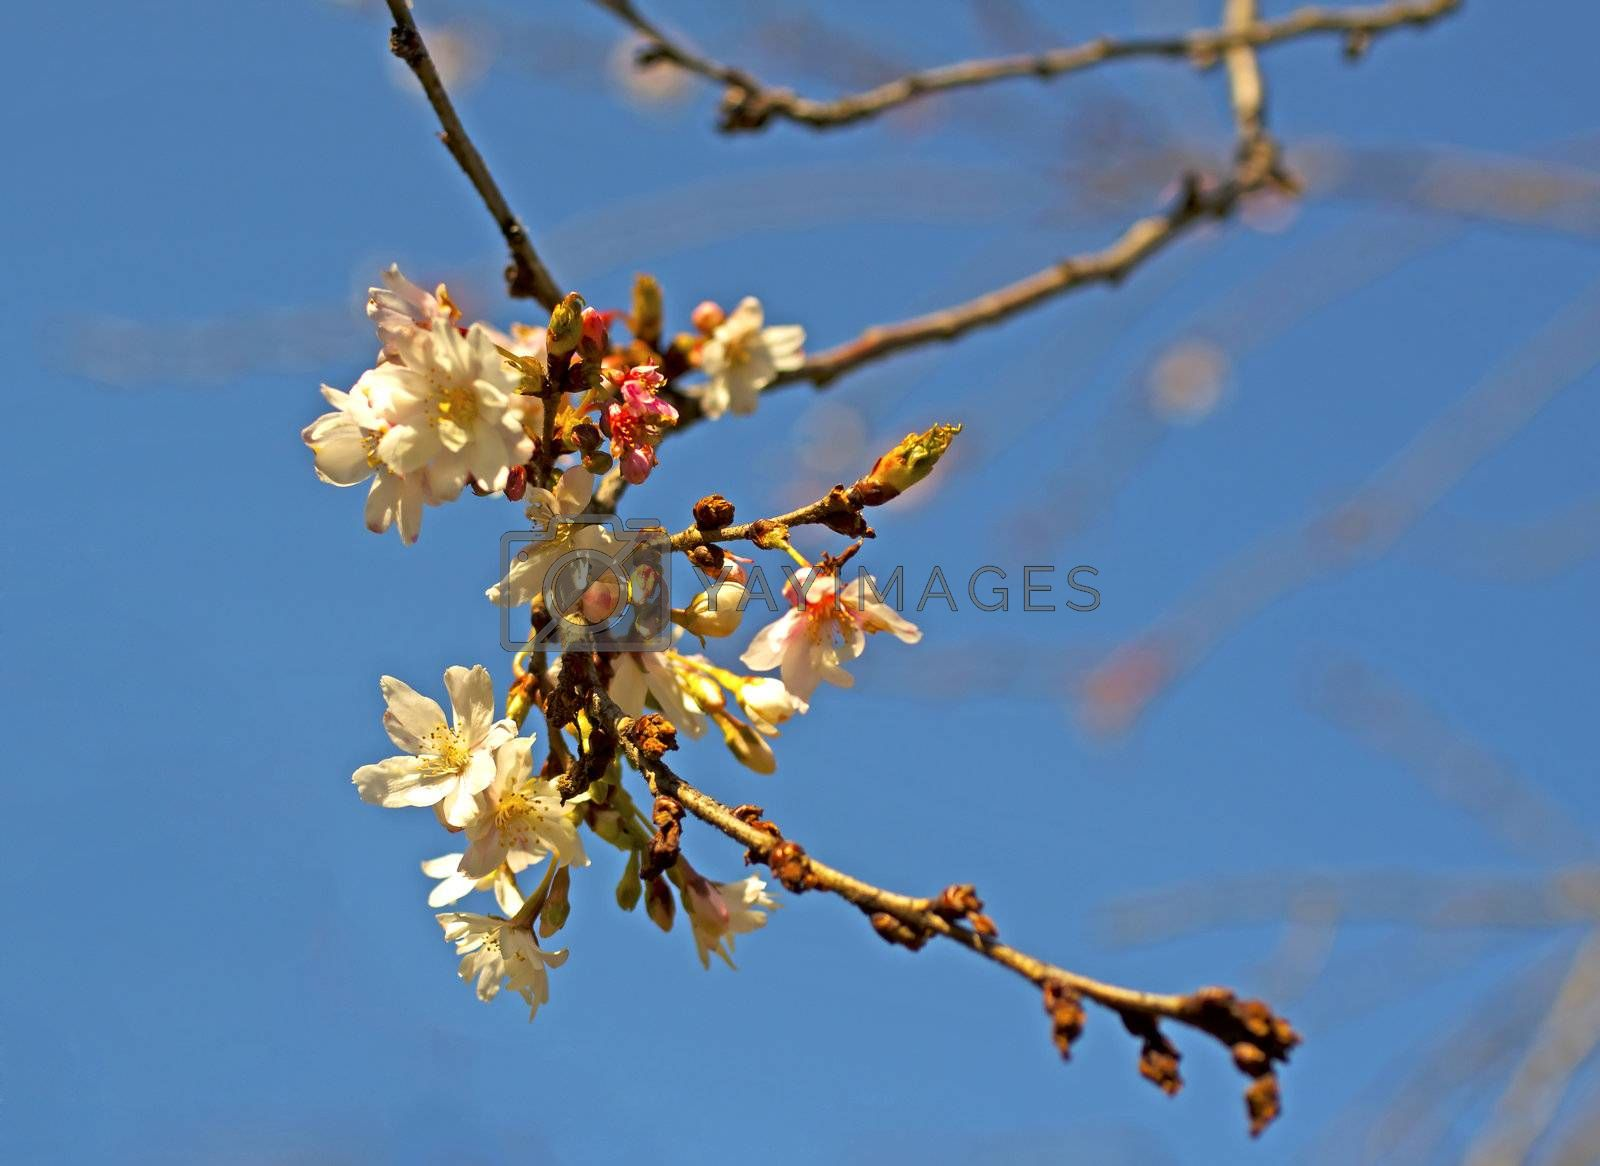 Flowers on a branch of a cherry tree, with blue sky in the background